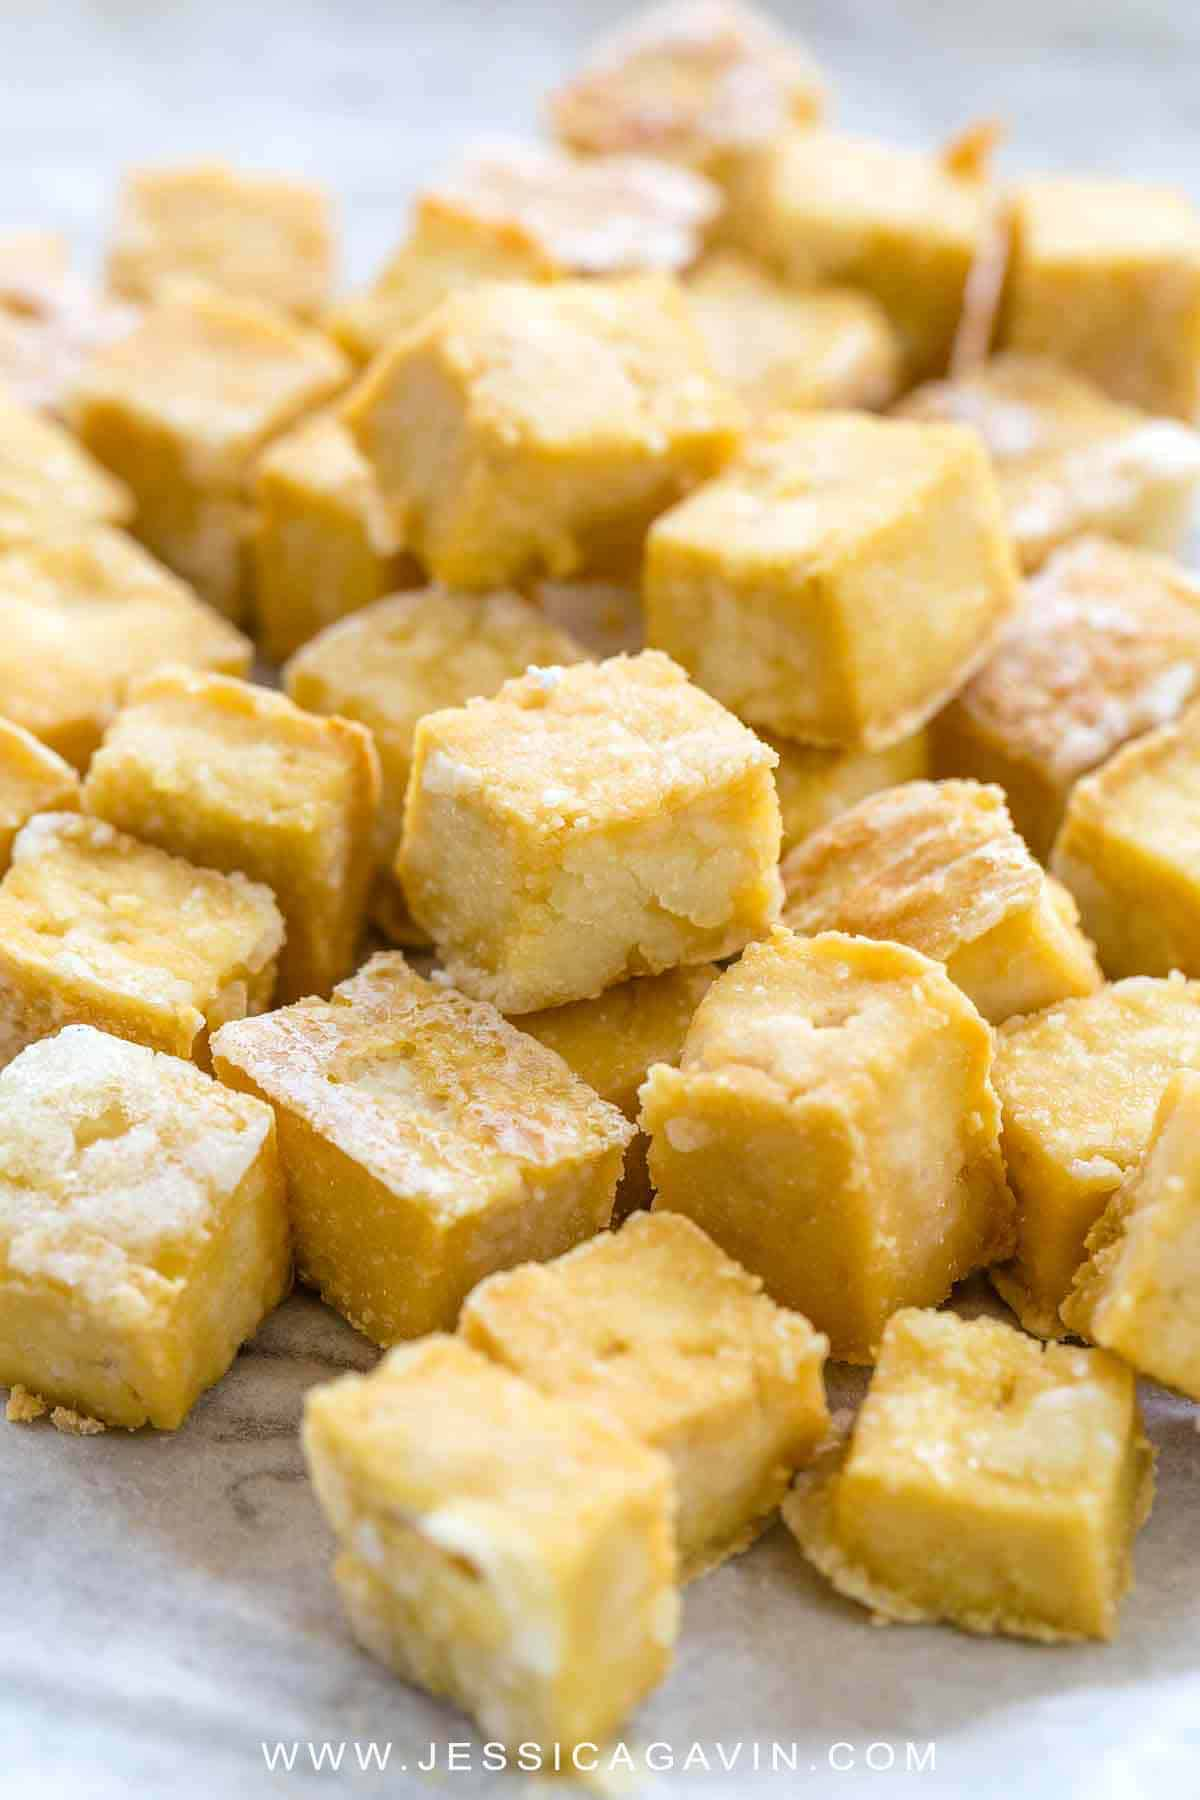 Tofu is a nutrient-packed and plant-based protein source that can deliver various culinary delights.Learn how to make crispy baked tofu with a few critical preparation steps. Cut the bean curd into multiple shapes and serve with any sauce or sides. #bakedtofu #tofu